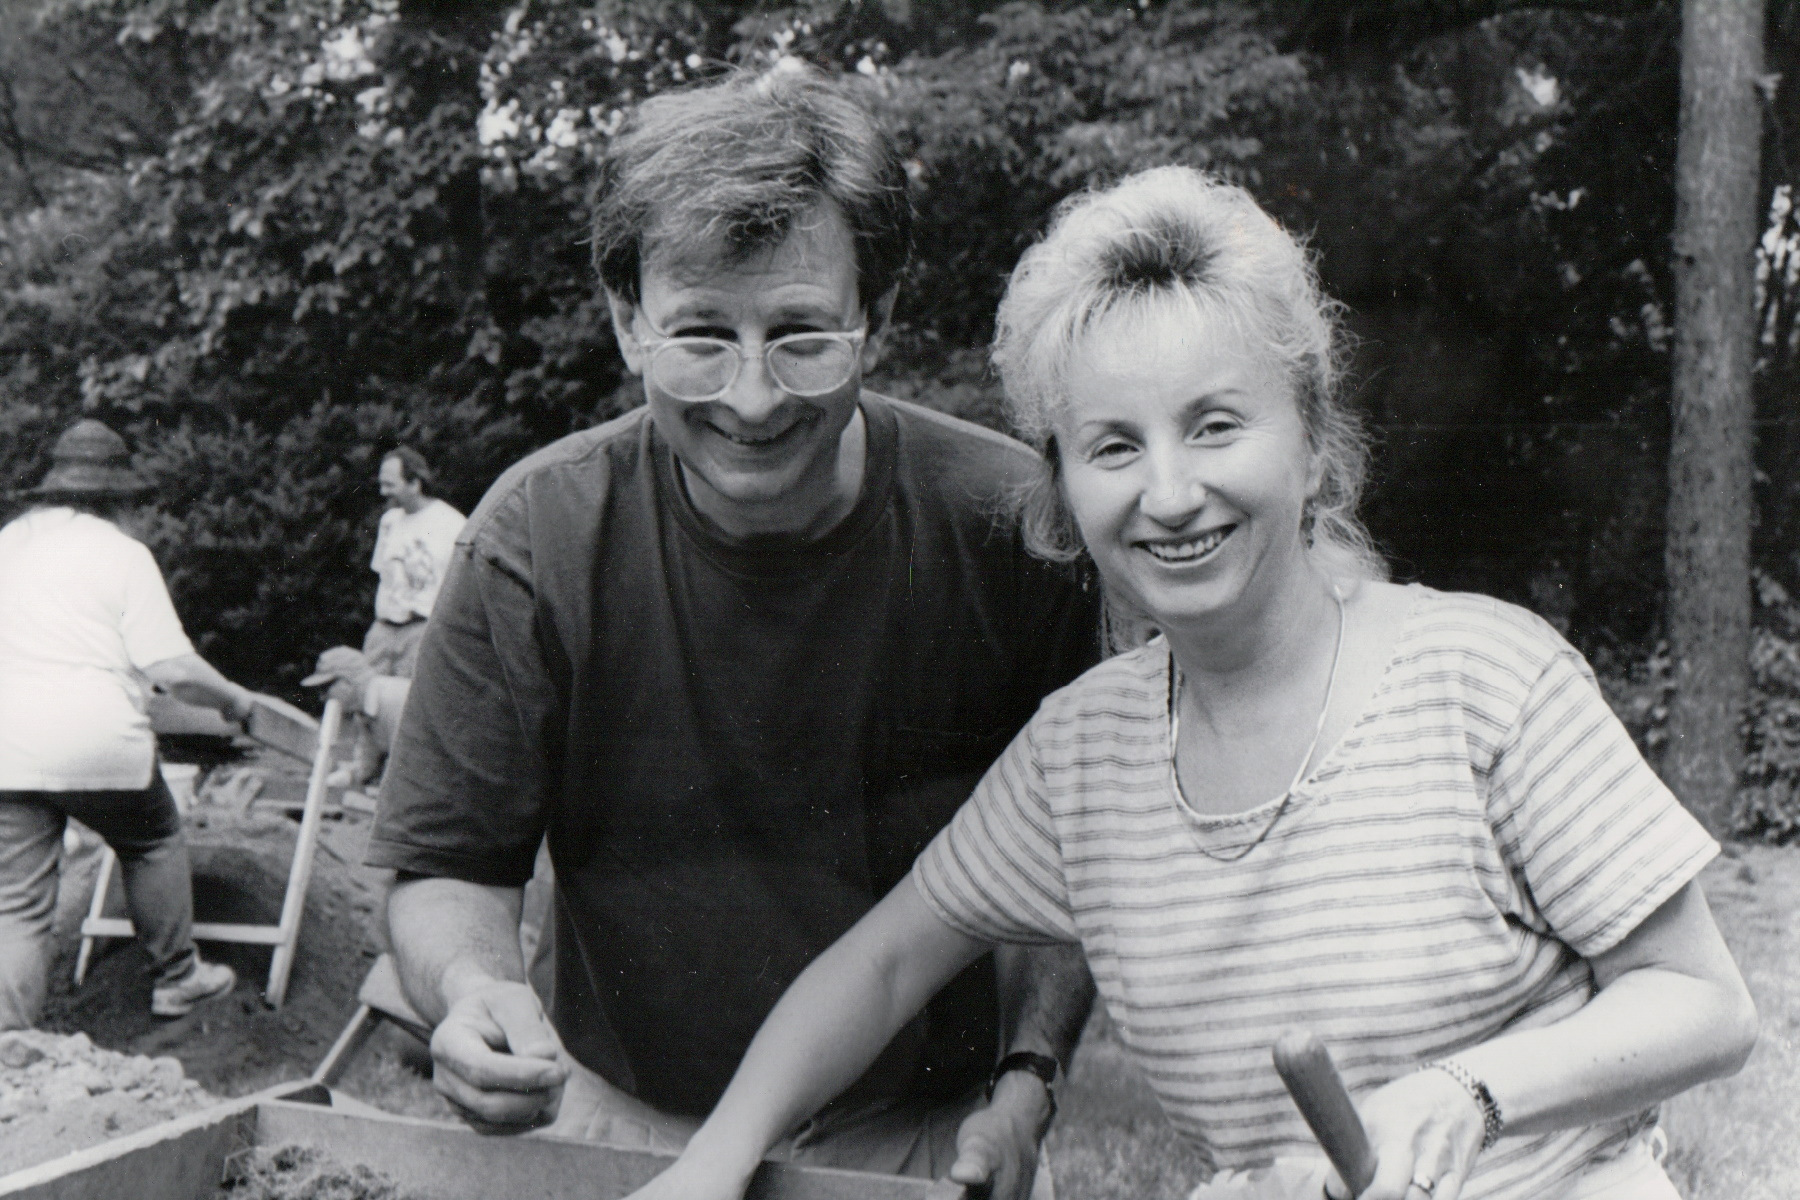 Black and white photo of a man and woman using a sifter at an archeological dig.